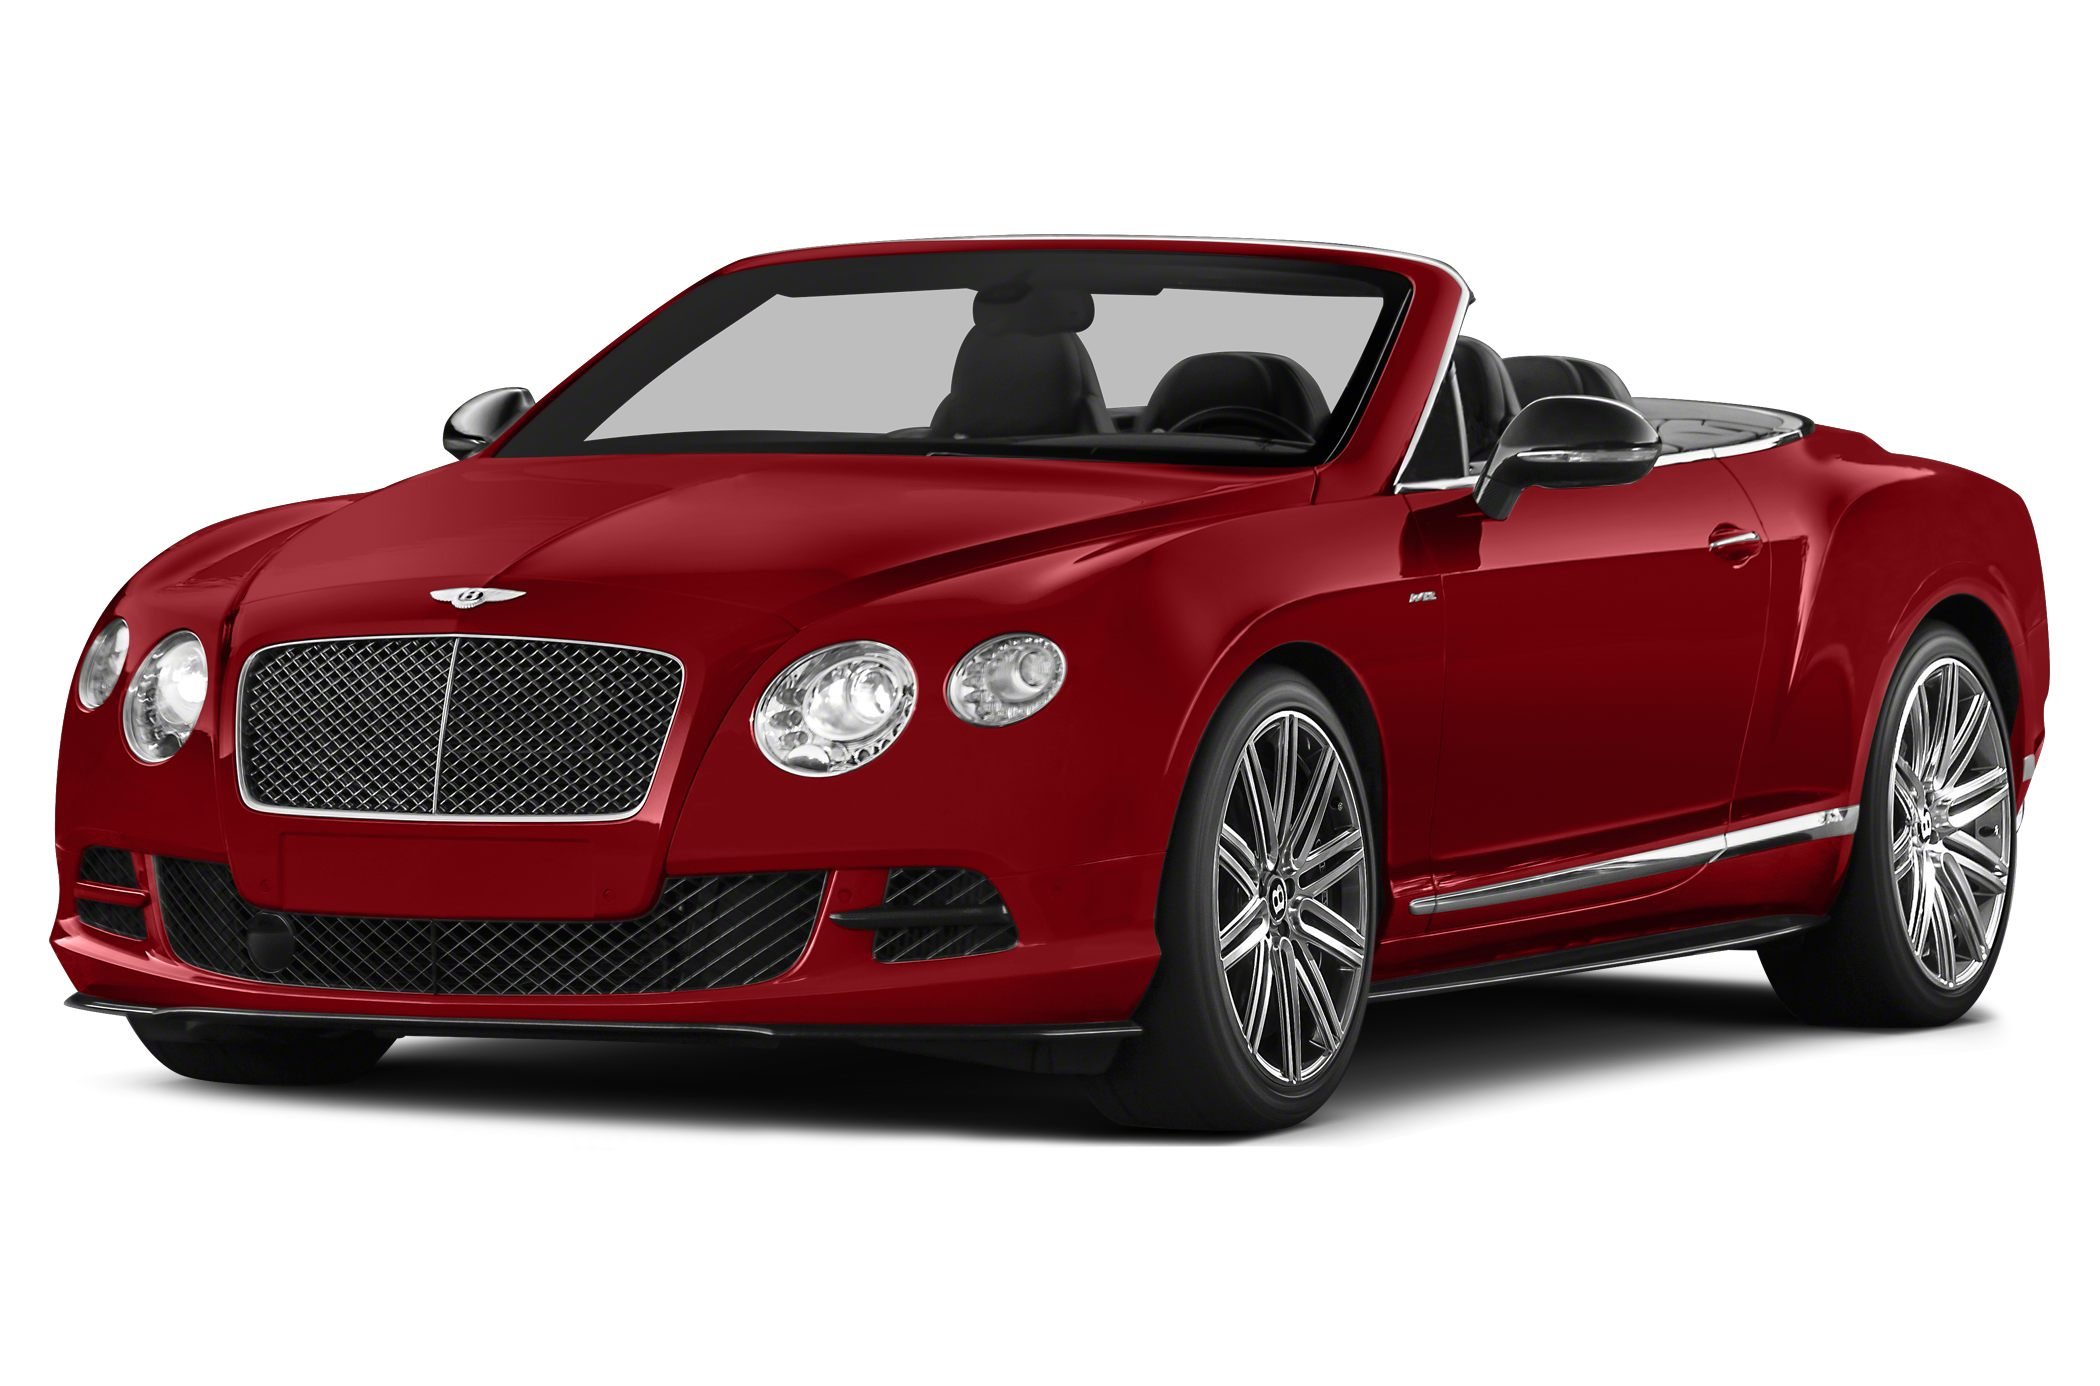 2015 Bentley Continental GTC Speed Convertible for sale in Miami for $285,870 with 61 miles